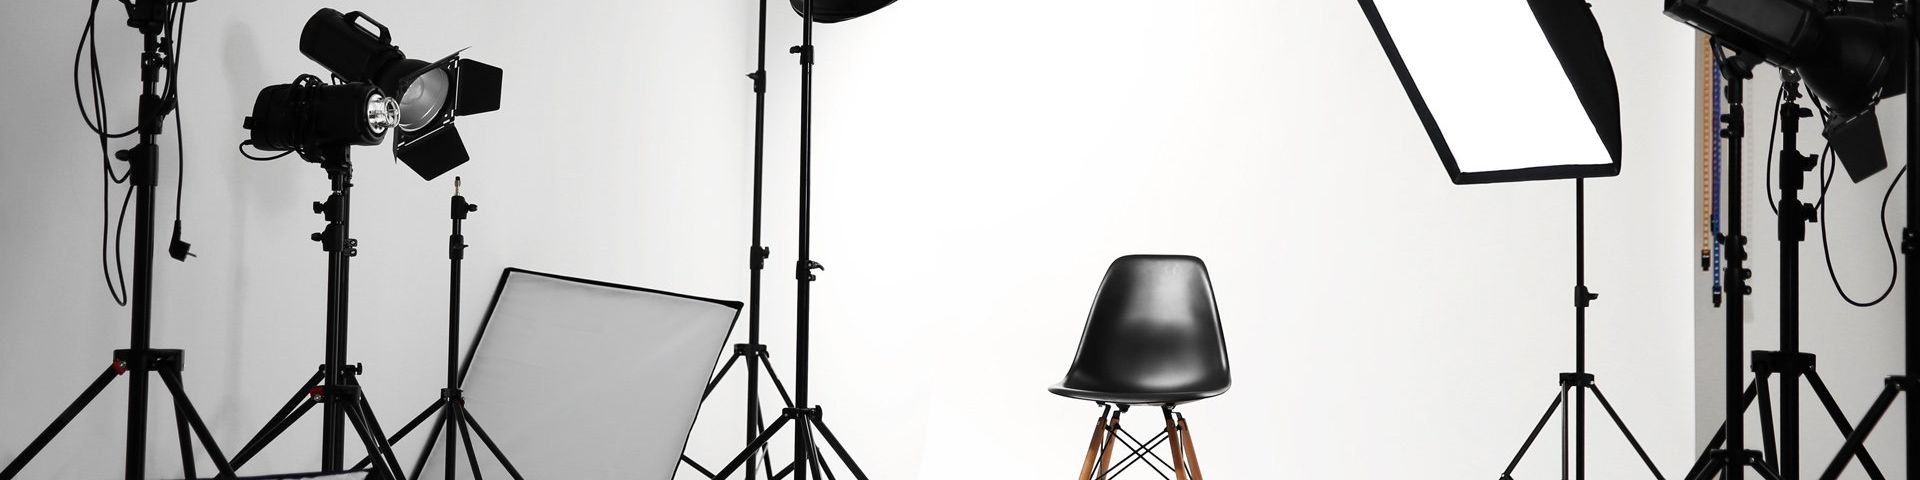 A black chair in the middle of a white photography studio, surrounded by lights.